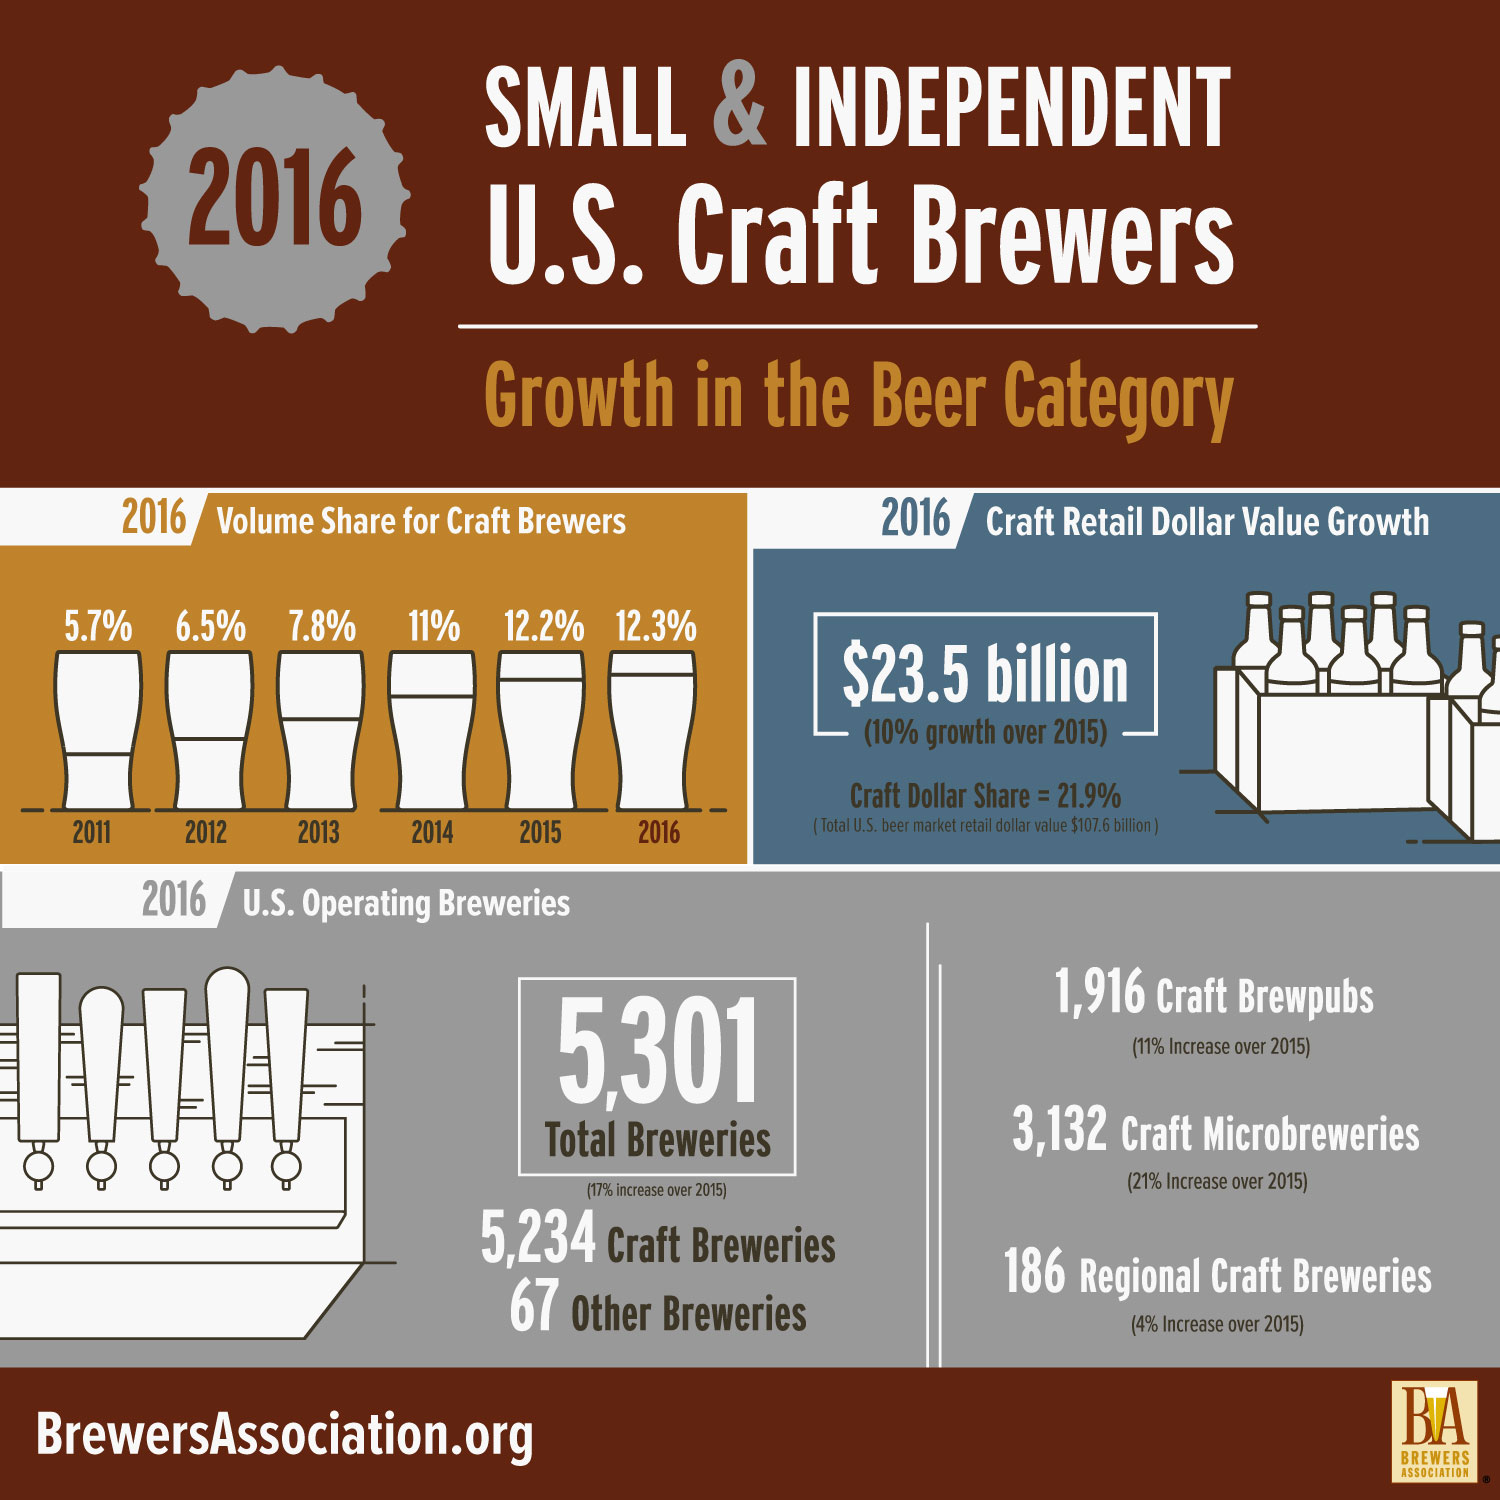 Informational poster from BrewersAssociation.org about 2016 Small & Independent U.S. Craft Brewers, including volume share, retail dollar value growth, and number of operating breweries.